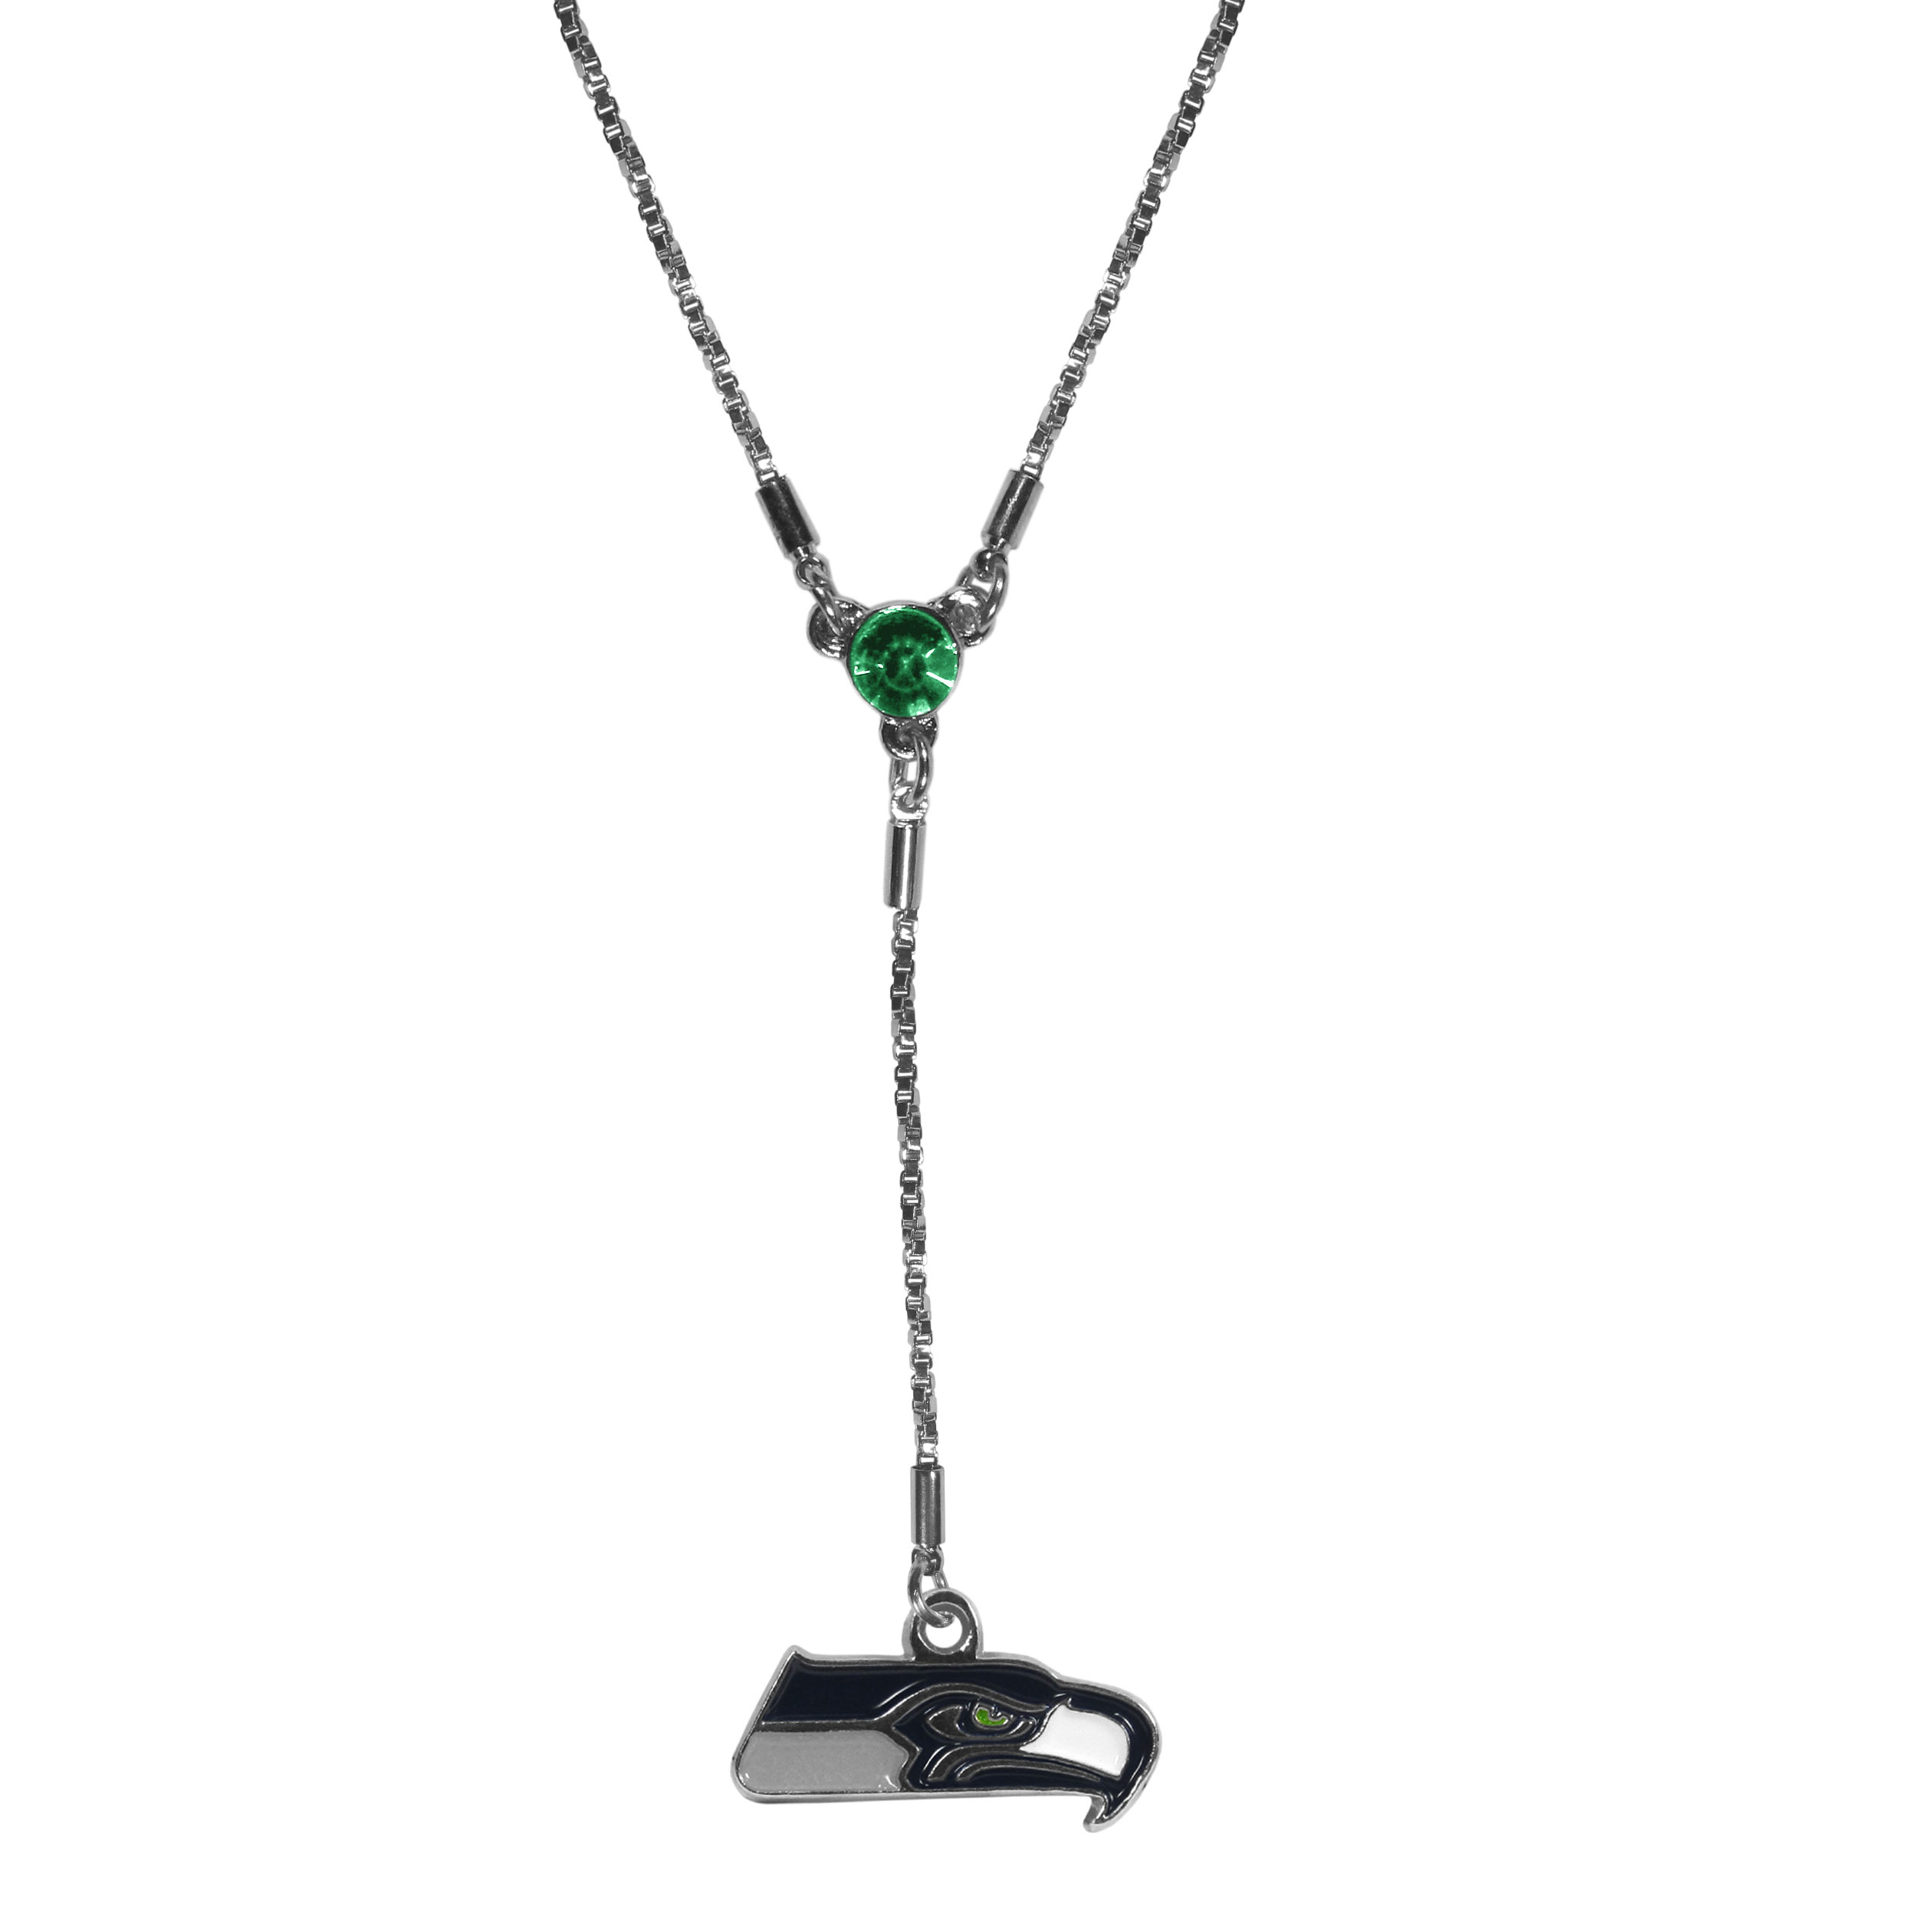 Seattle Seahawks Lariat Necklace - This designer look is a stylish version of the classic lariat necklace. The chic box chain is 16 inches long with a 2 inch extender, the Y drop features a large team colored crystal with an expertly carved team charm. This trendy look is a perfect blend of sporty and chic making is a mush-have fashion accessory for the fashion-forward Seattle Seahawks fan.